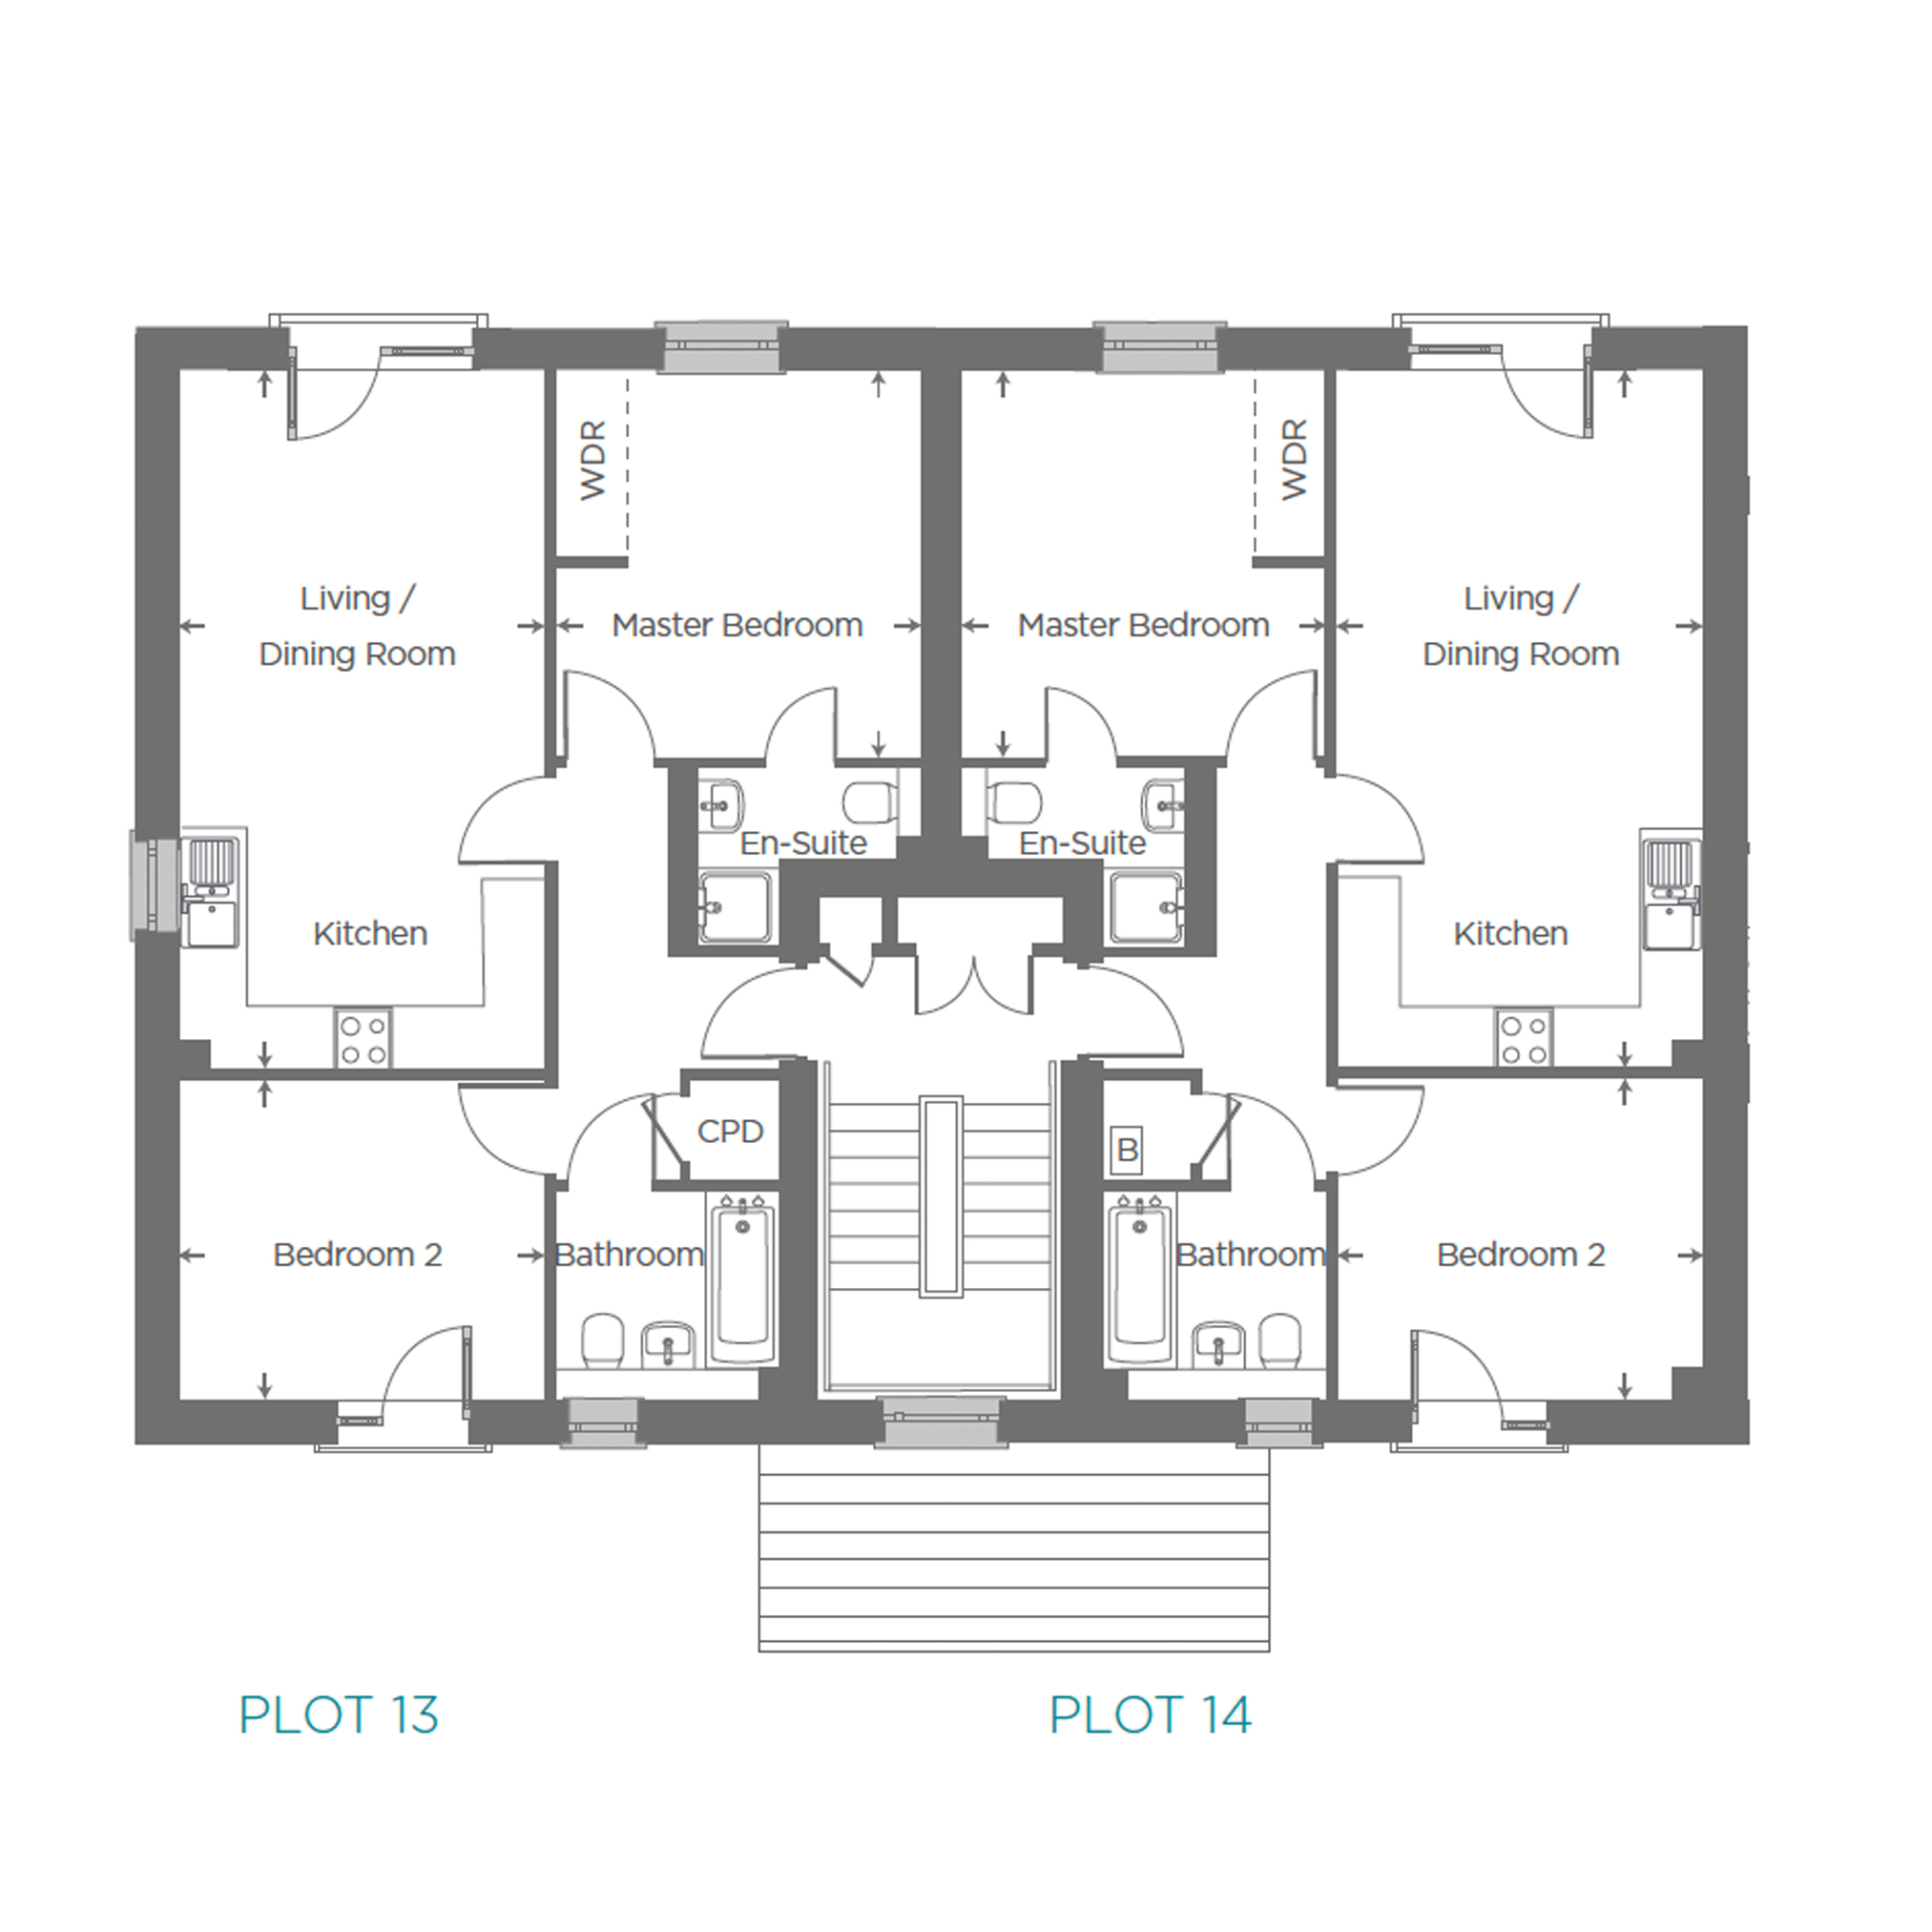 Plot 14 Floor plan